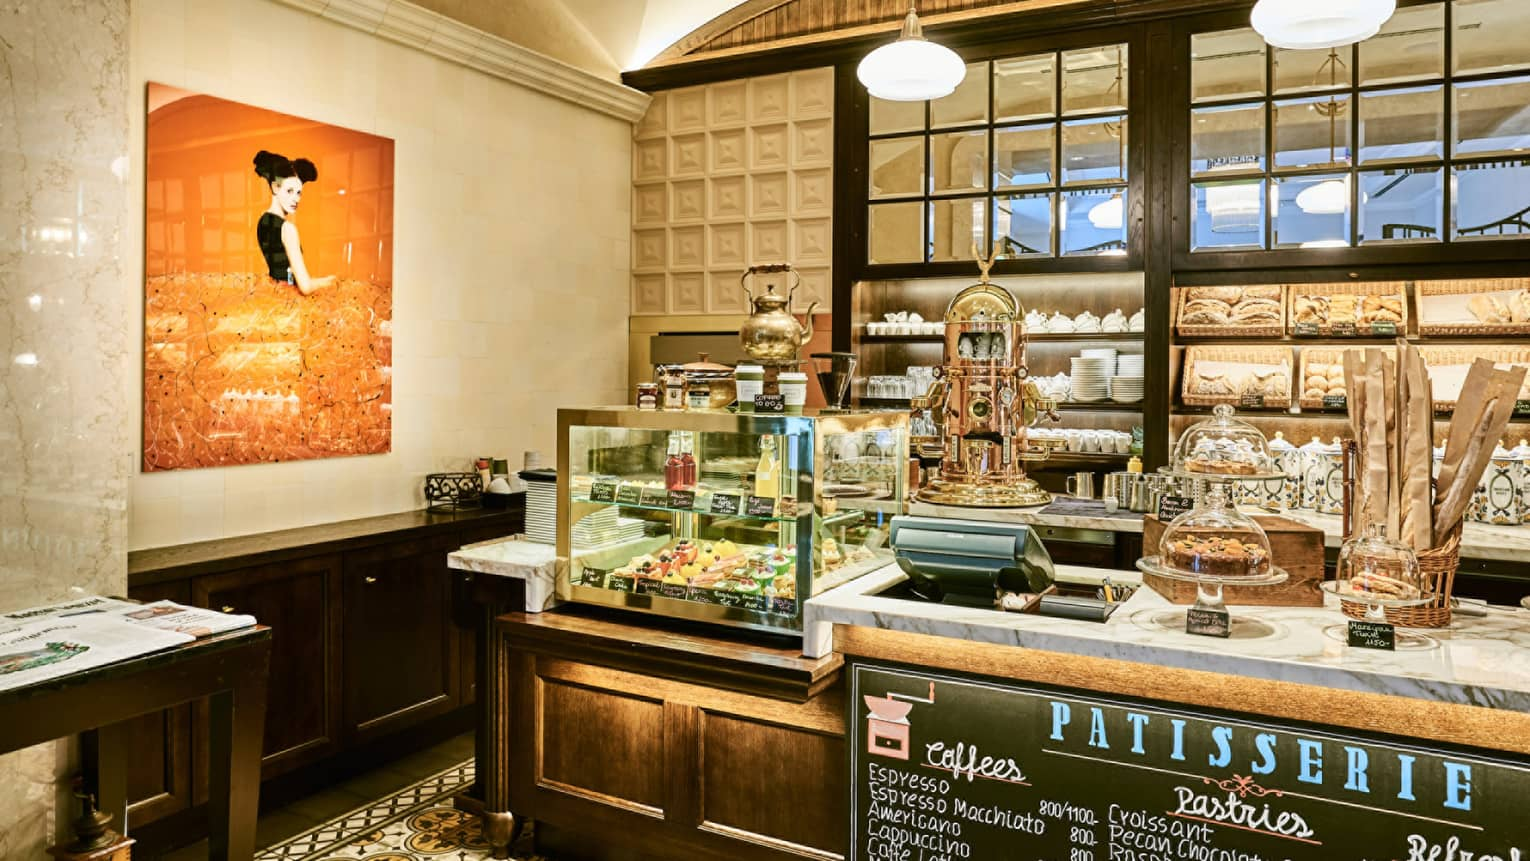 KOLLÁZS Brasserie & Bar Patisserie counter with pastries, bread in display case, large orange painting